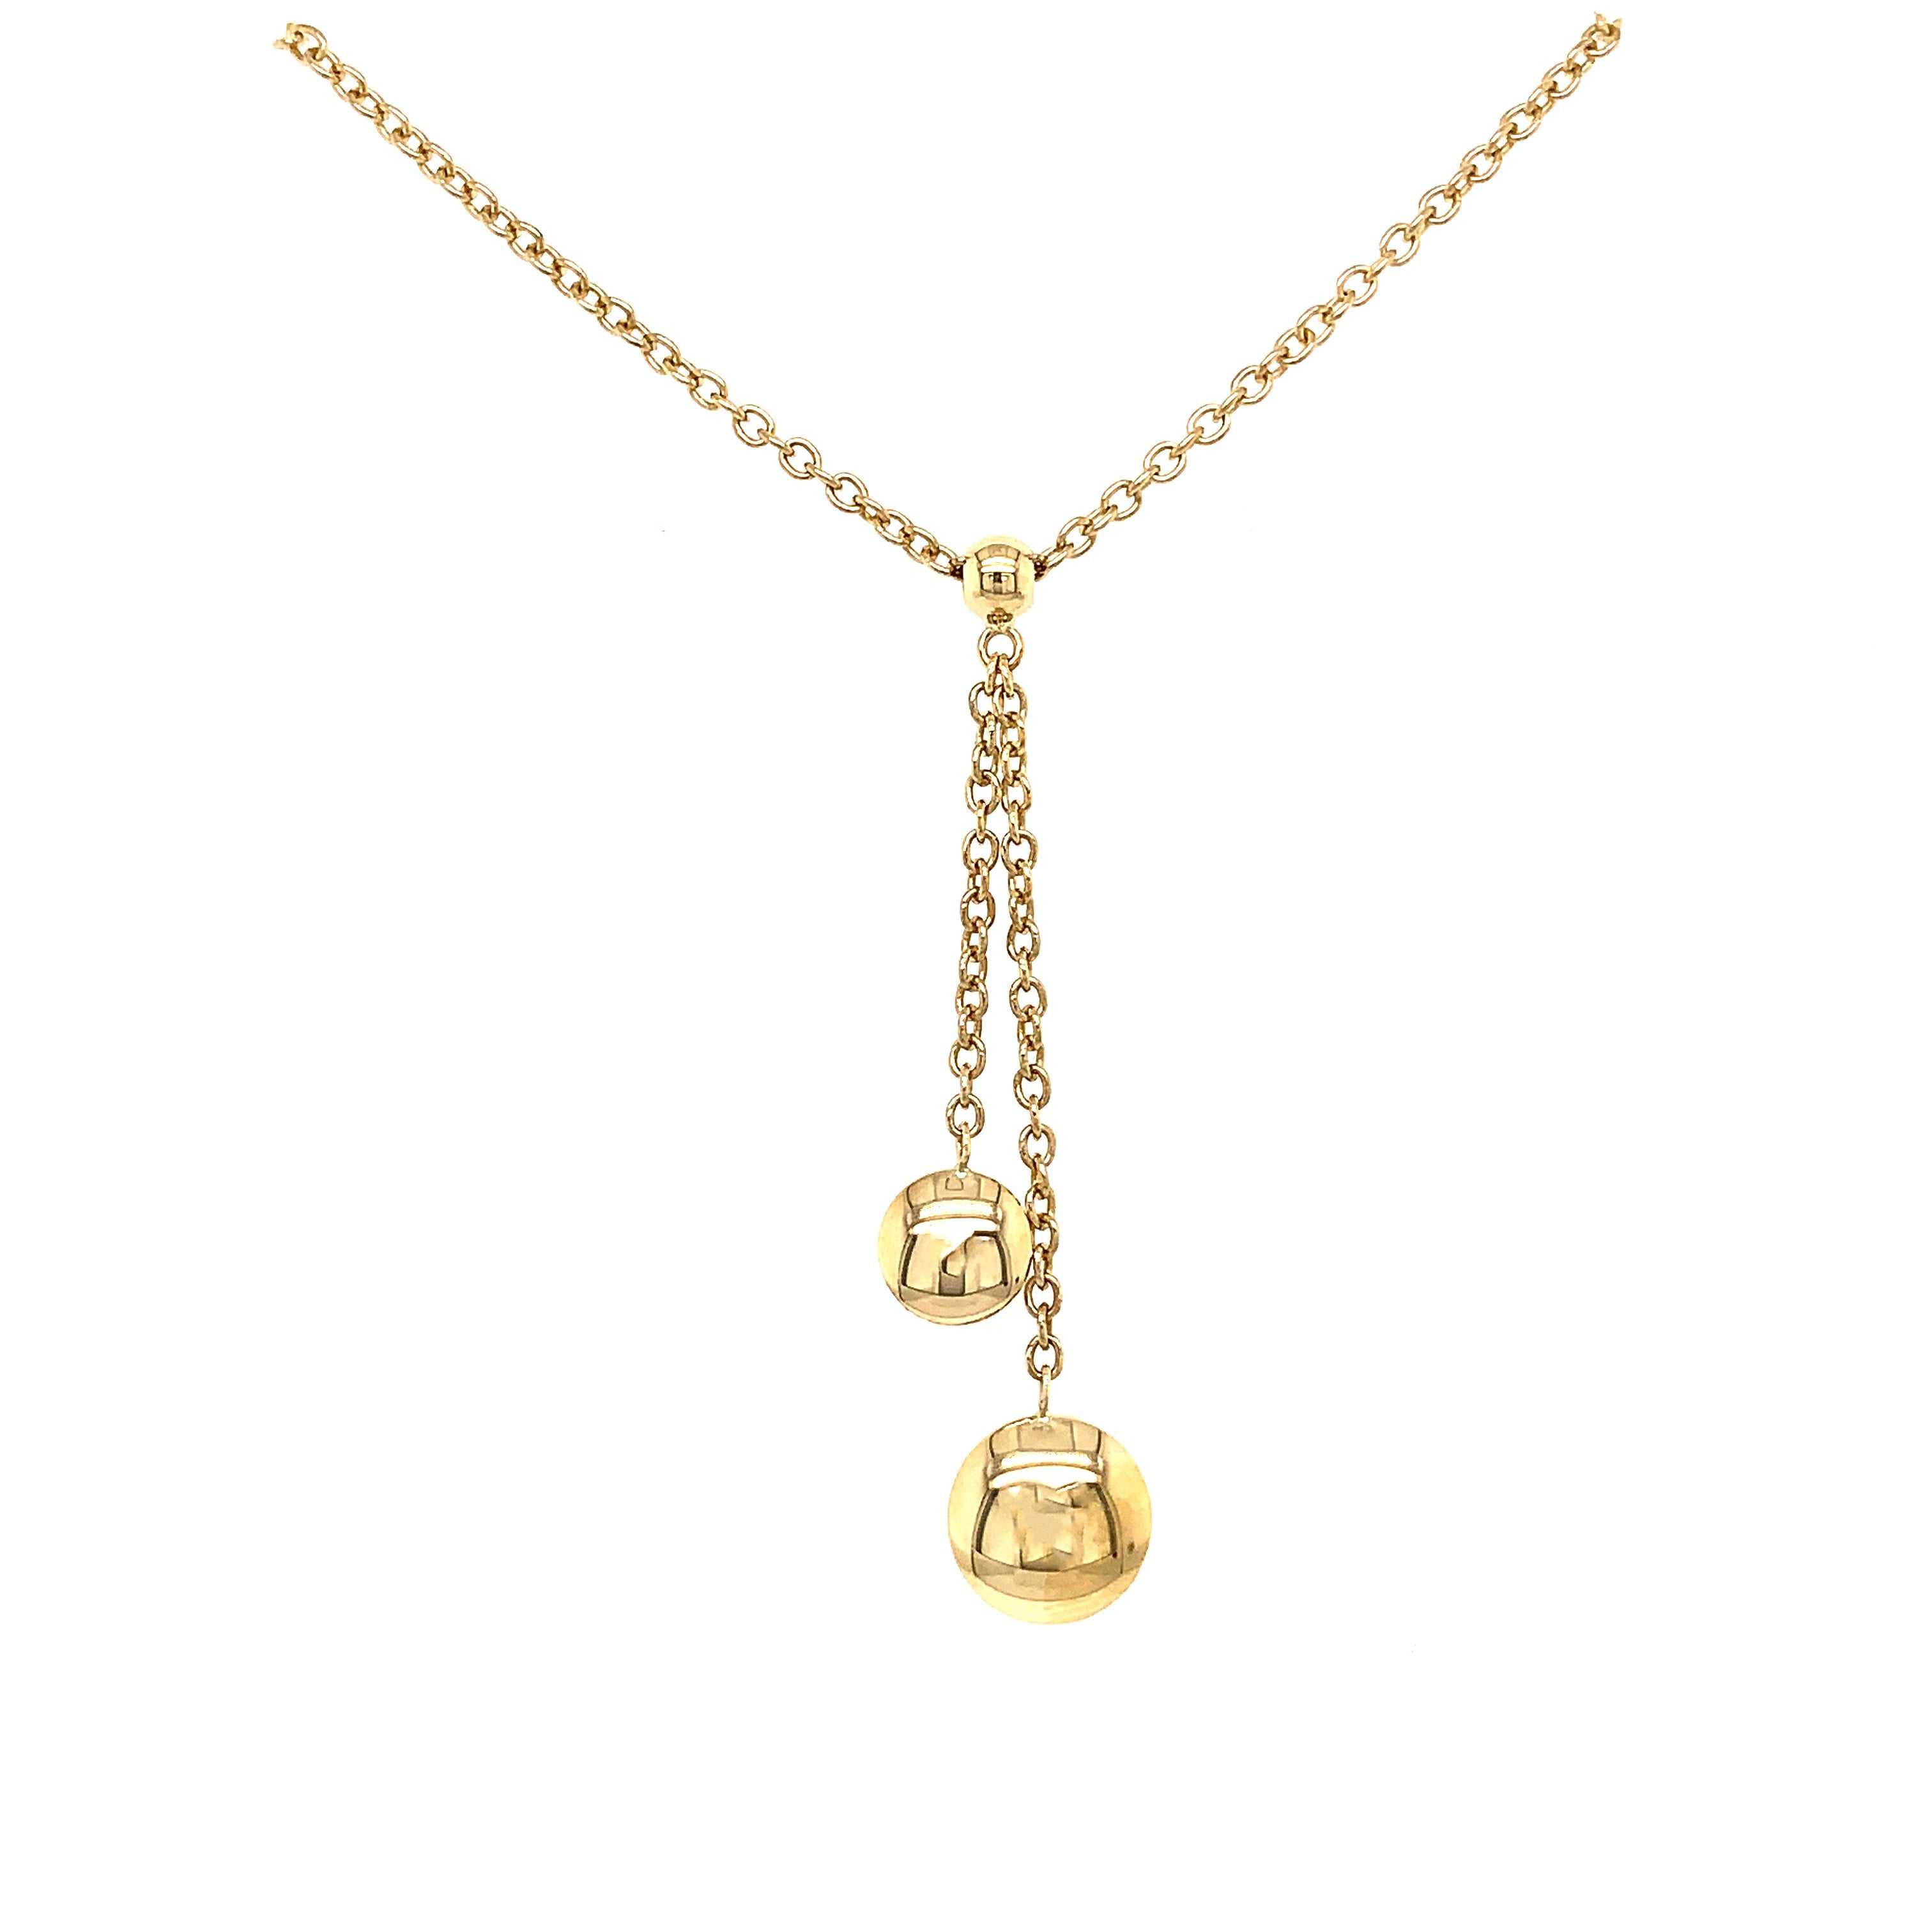 9ct Yellow Gold Polished Bead Drop Necklace - Andrew Scott